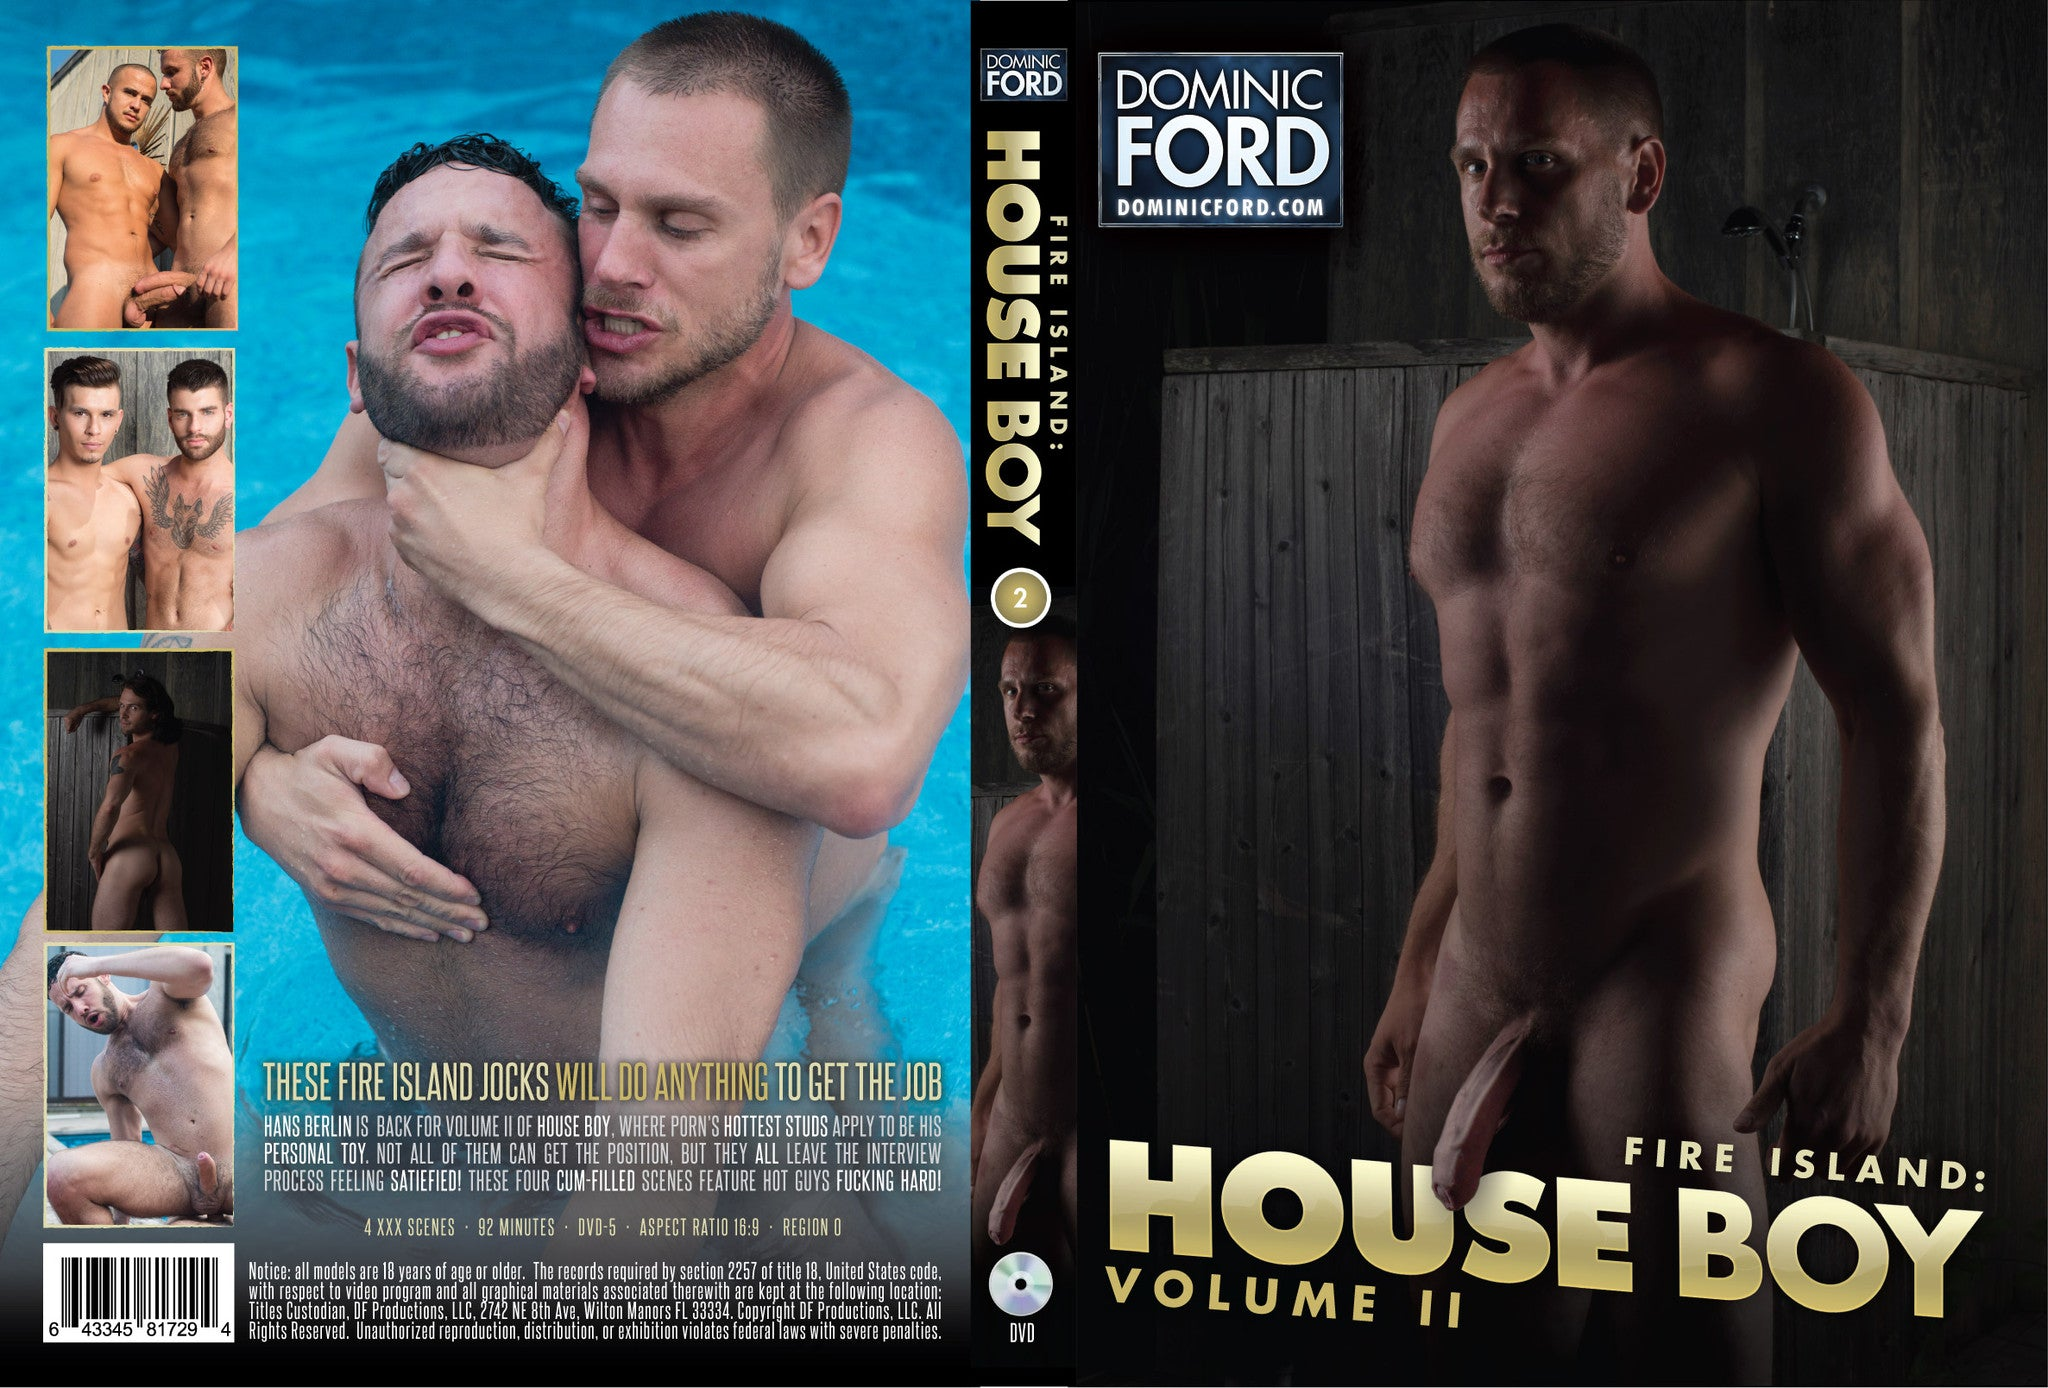 Fire Island: House Boy Volume 2